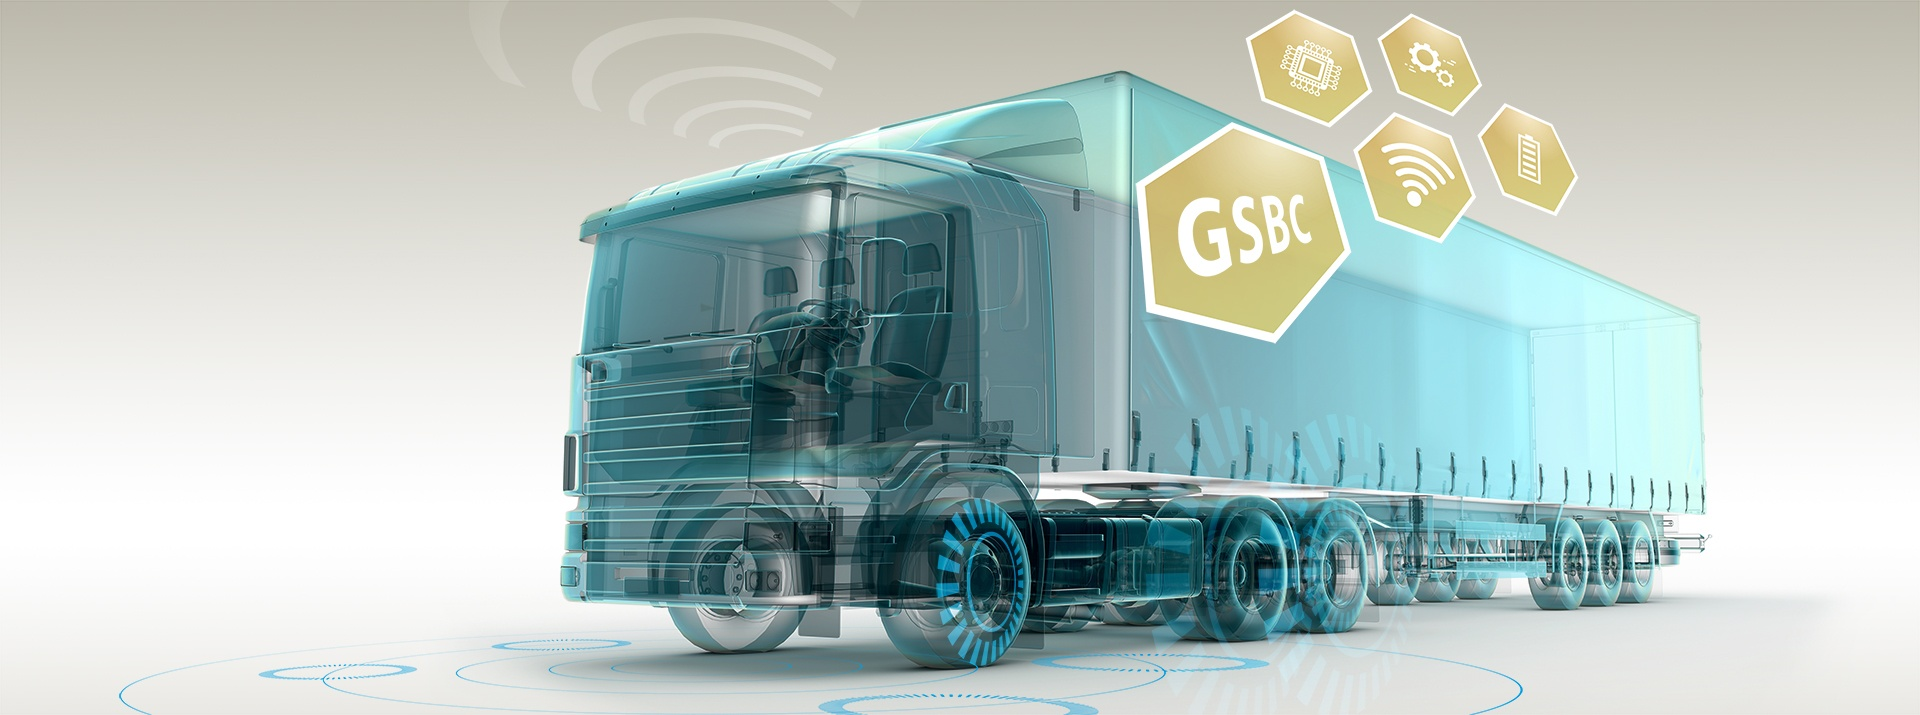 h-gbsc-truck-knorr-bremse_1_384x143_1920w